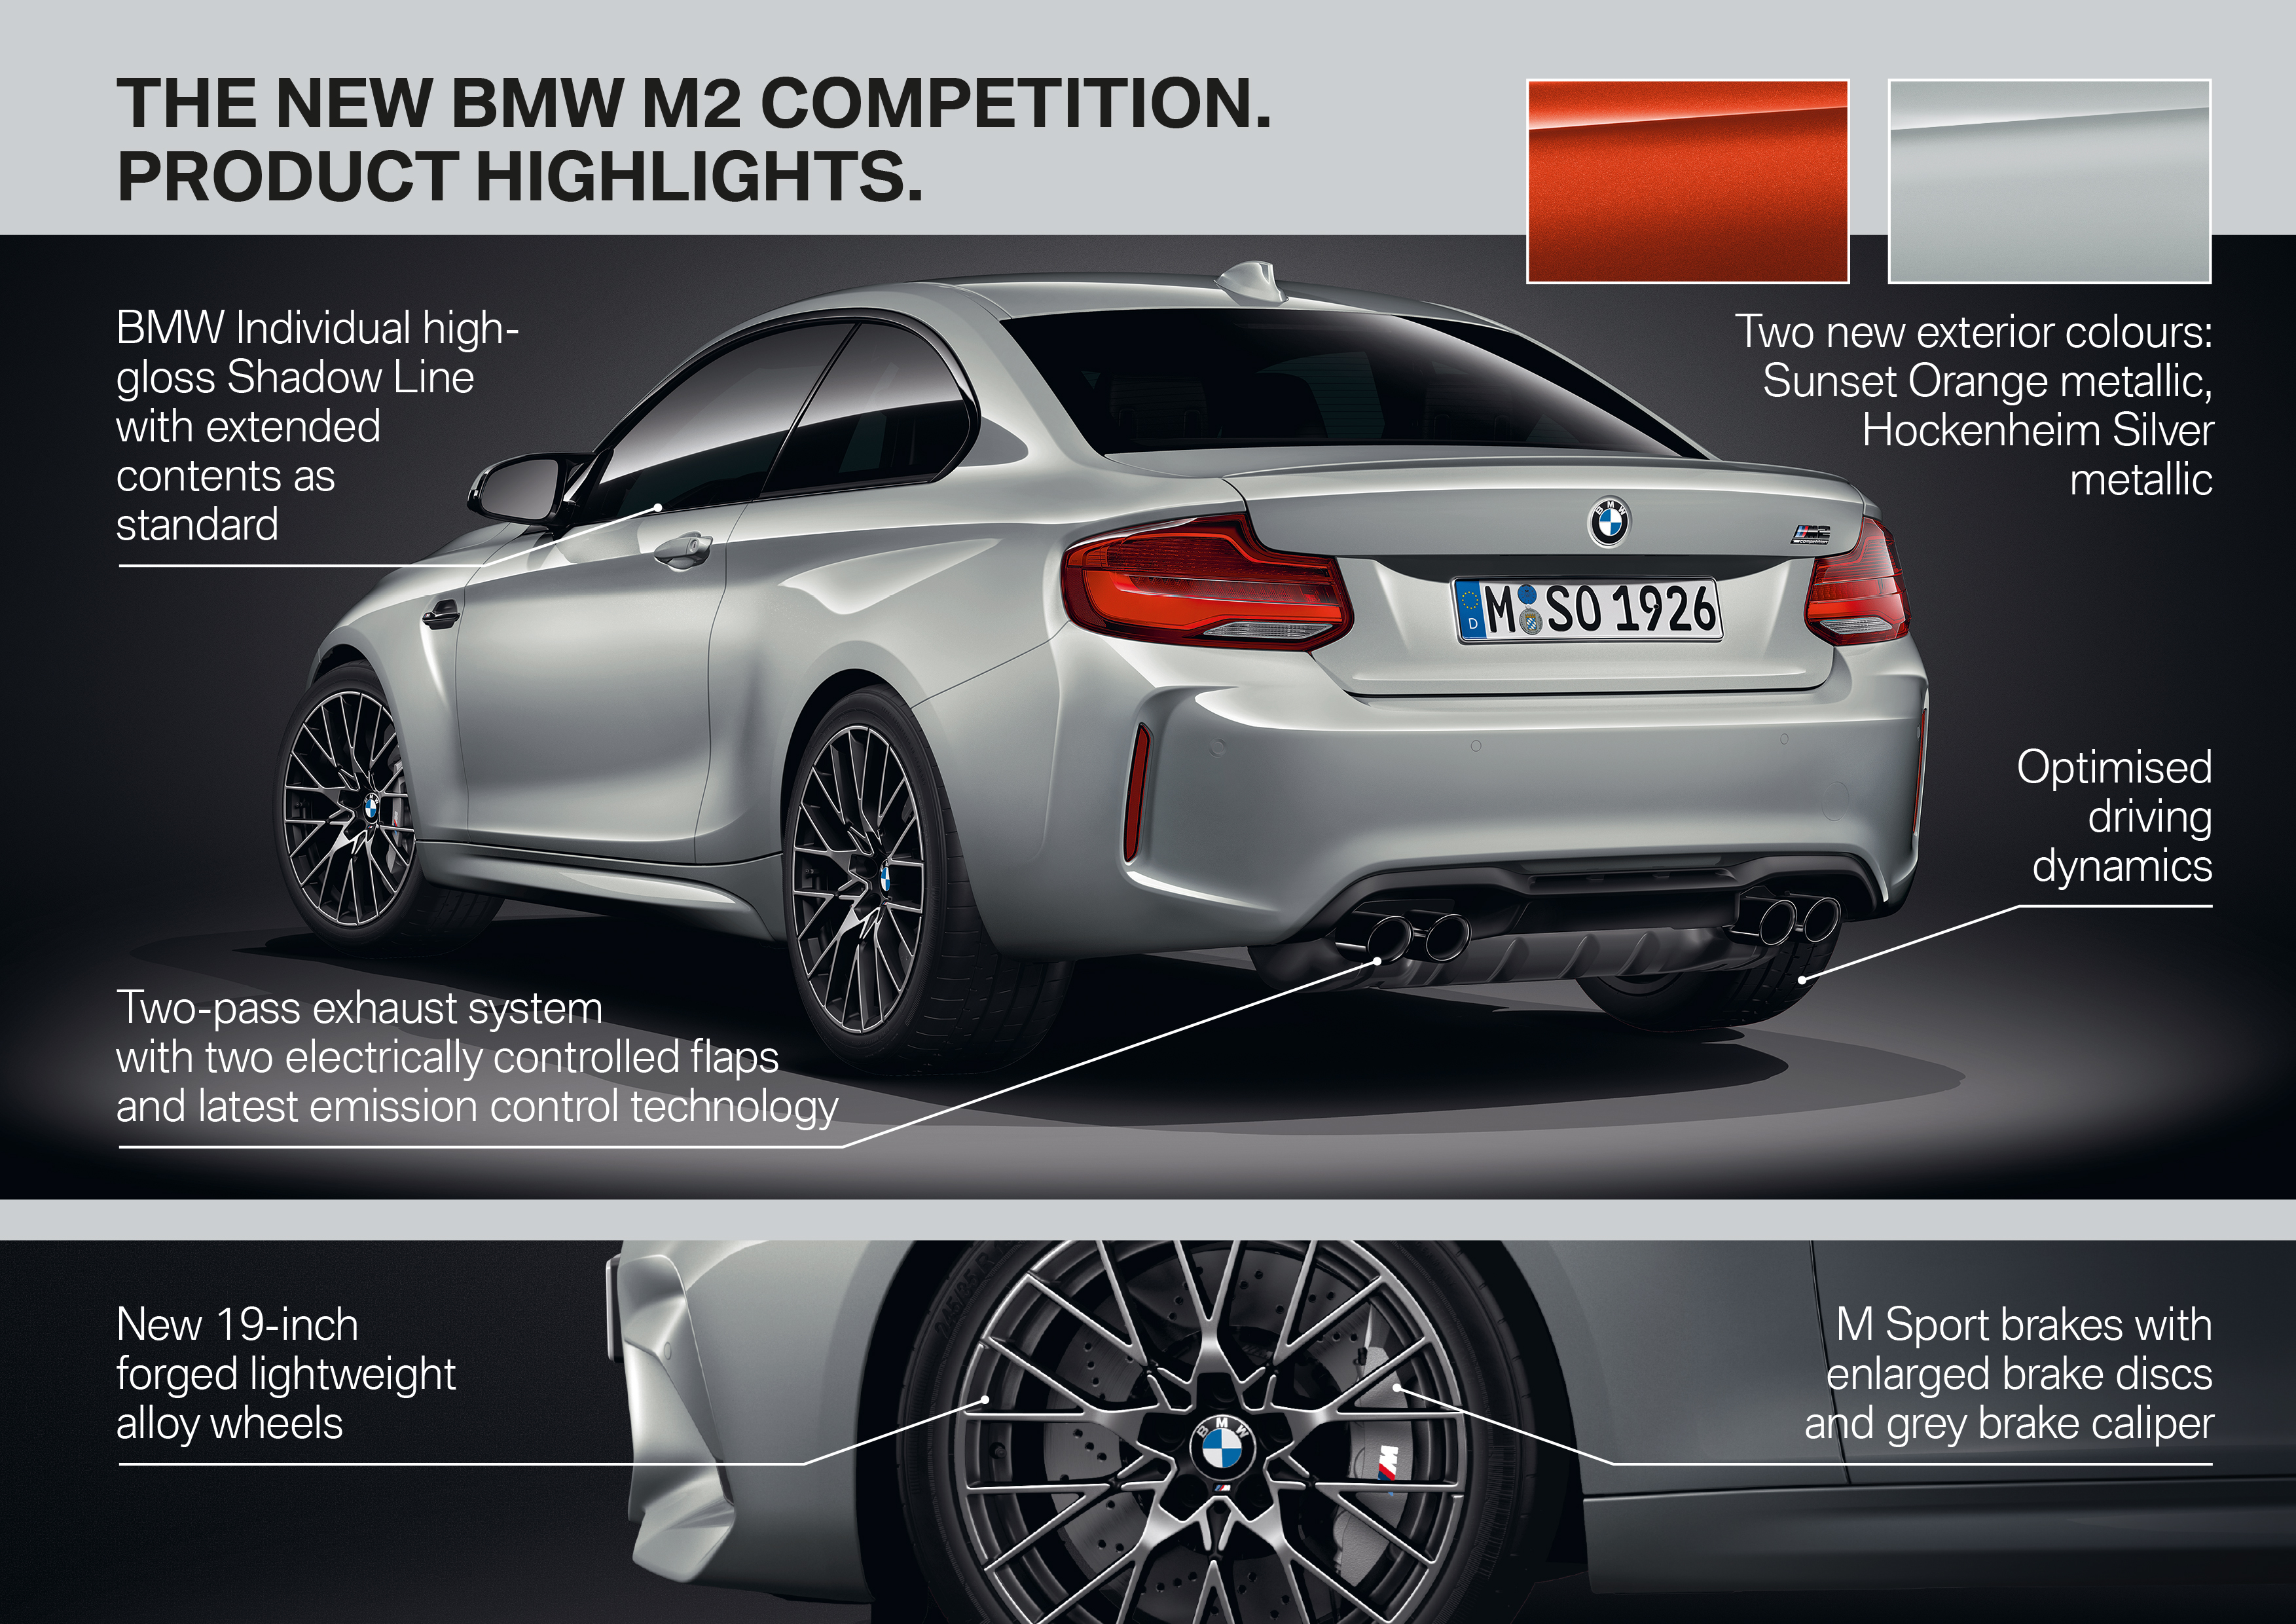 2019 Bmw M2 Competition Detailed In New Video Bimmerfile